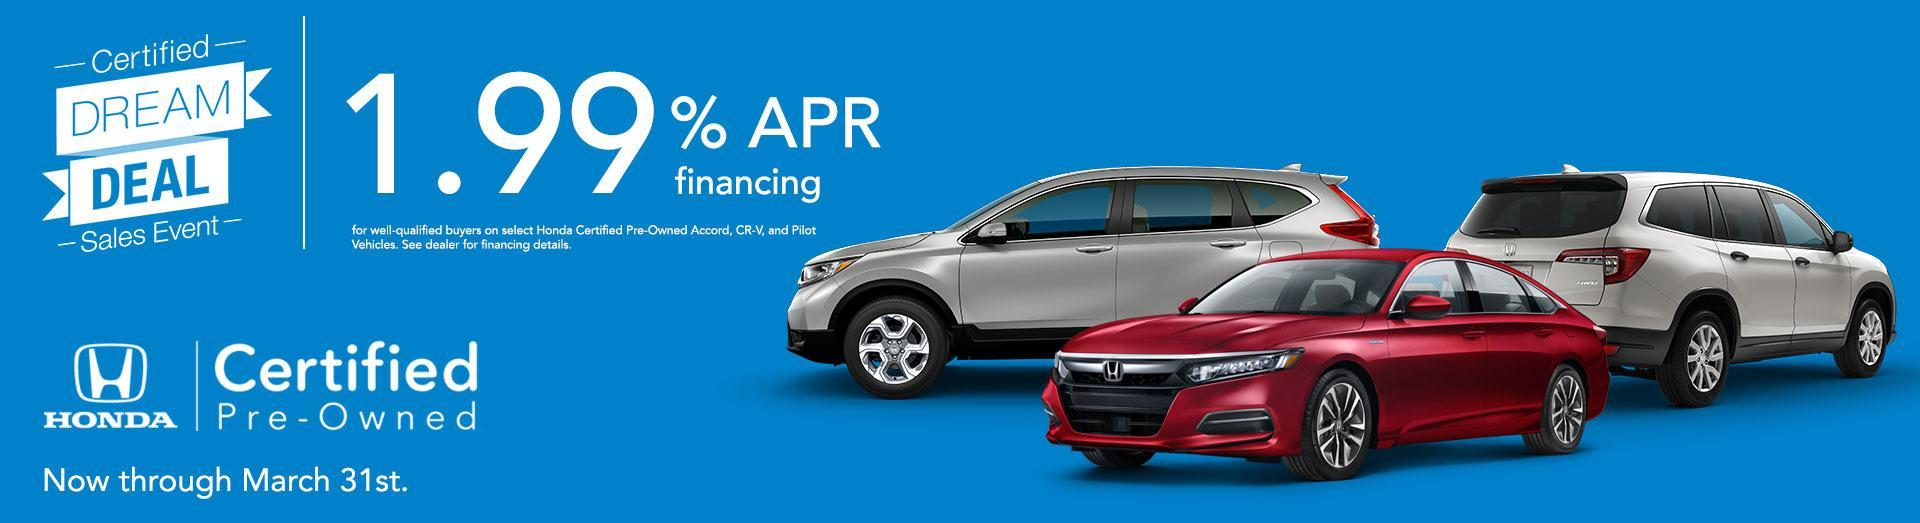 Honda CPO Offer